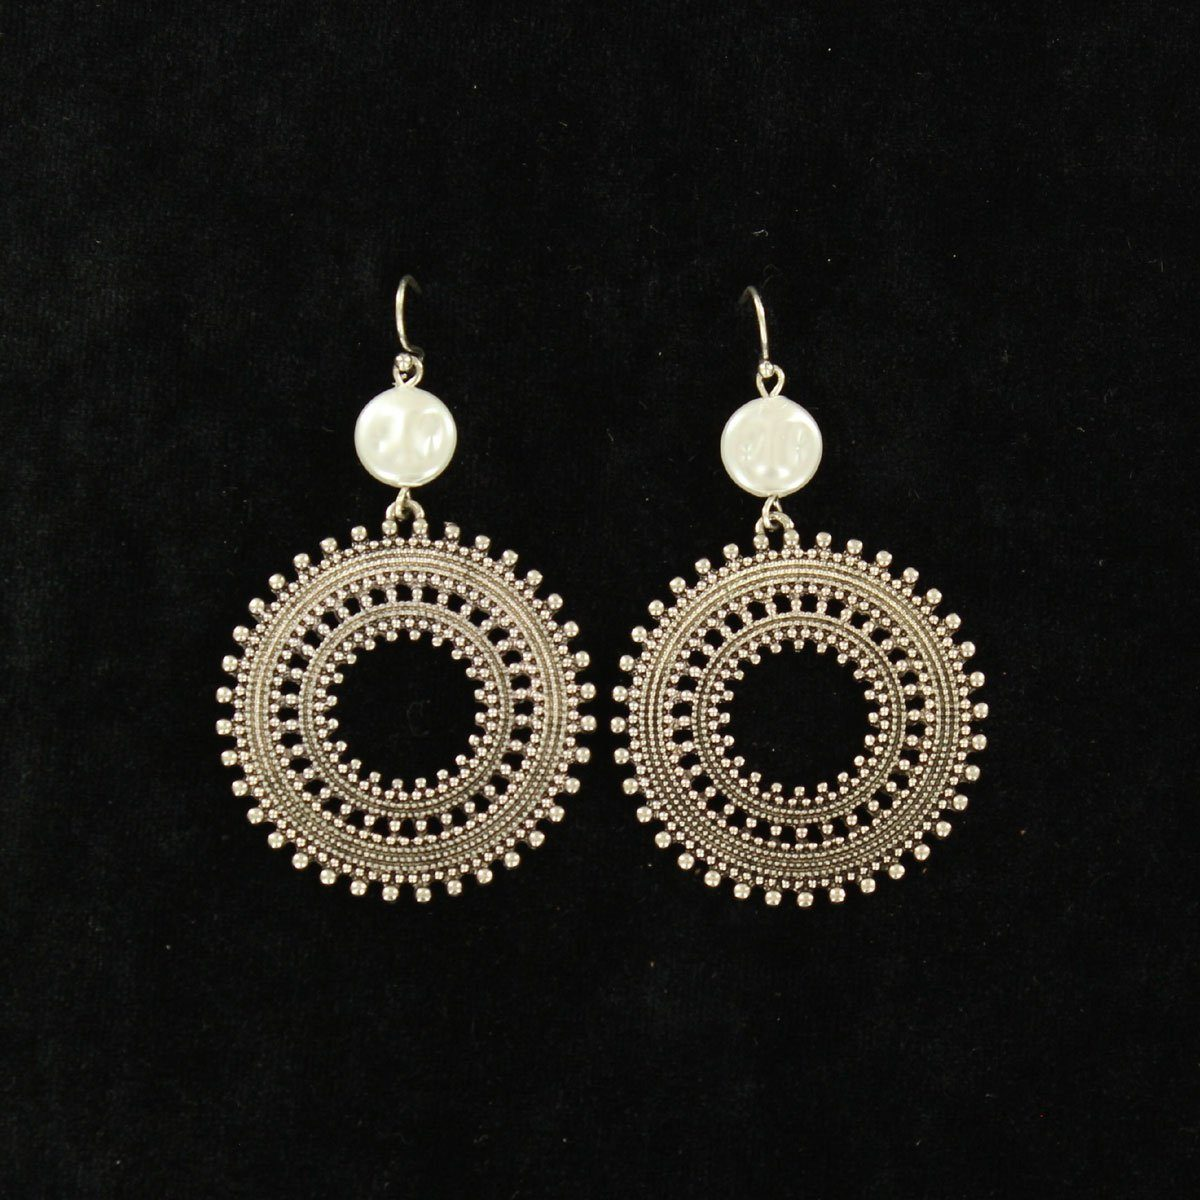 Silvertone Round with Pearly Accented Earrings Jewelry M&F Western Products